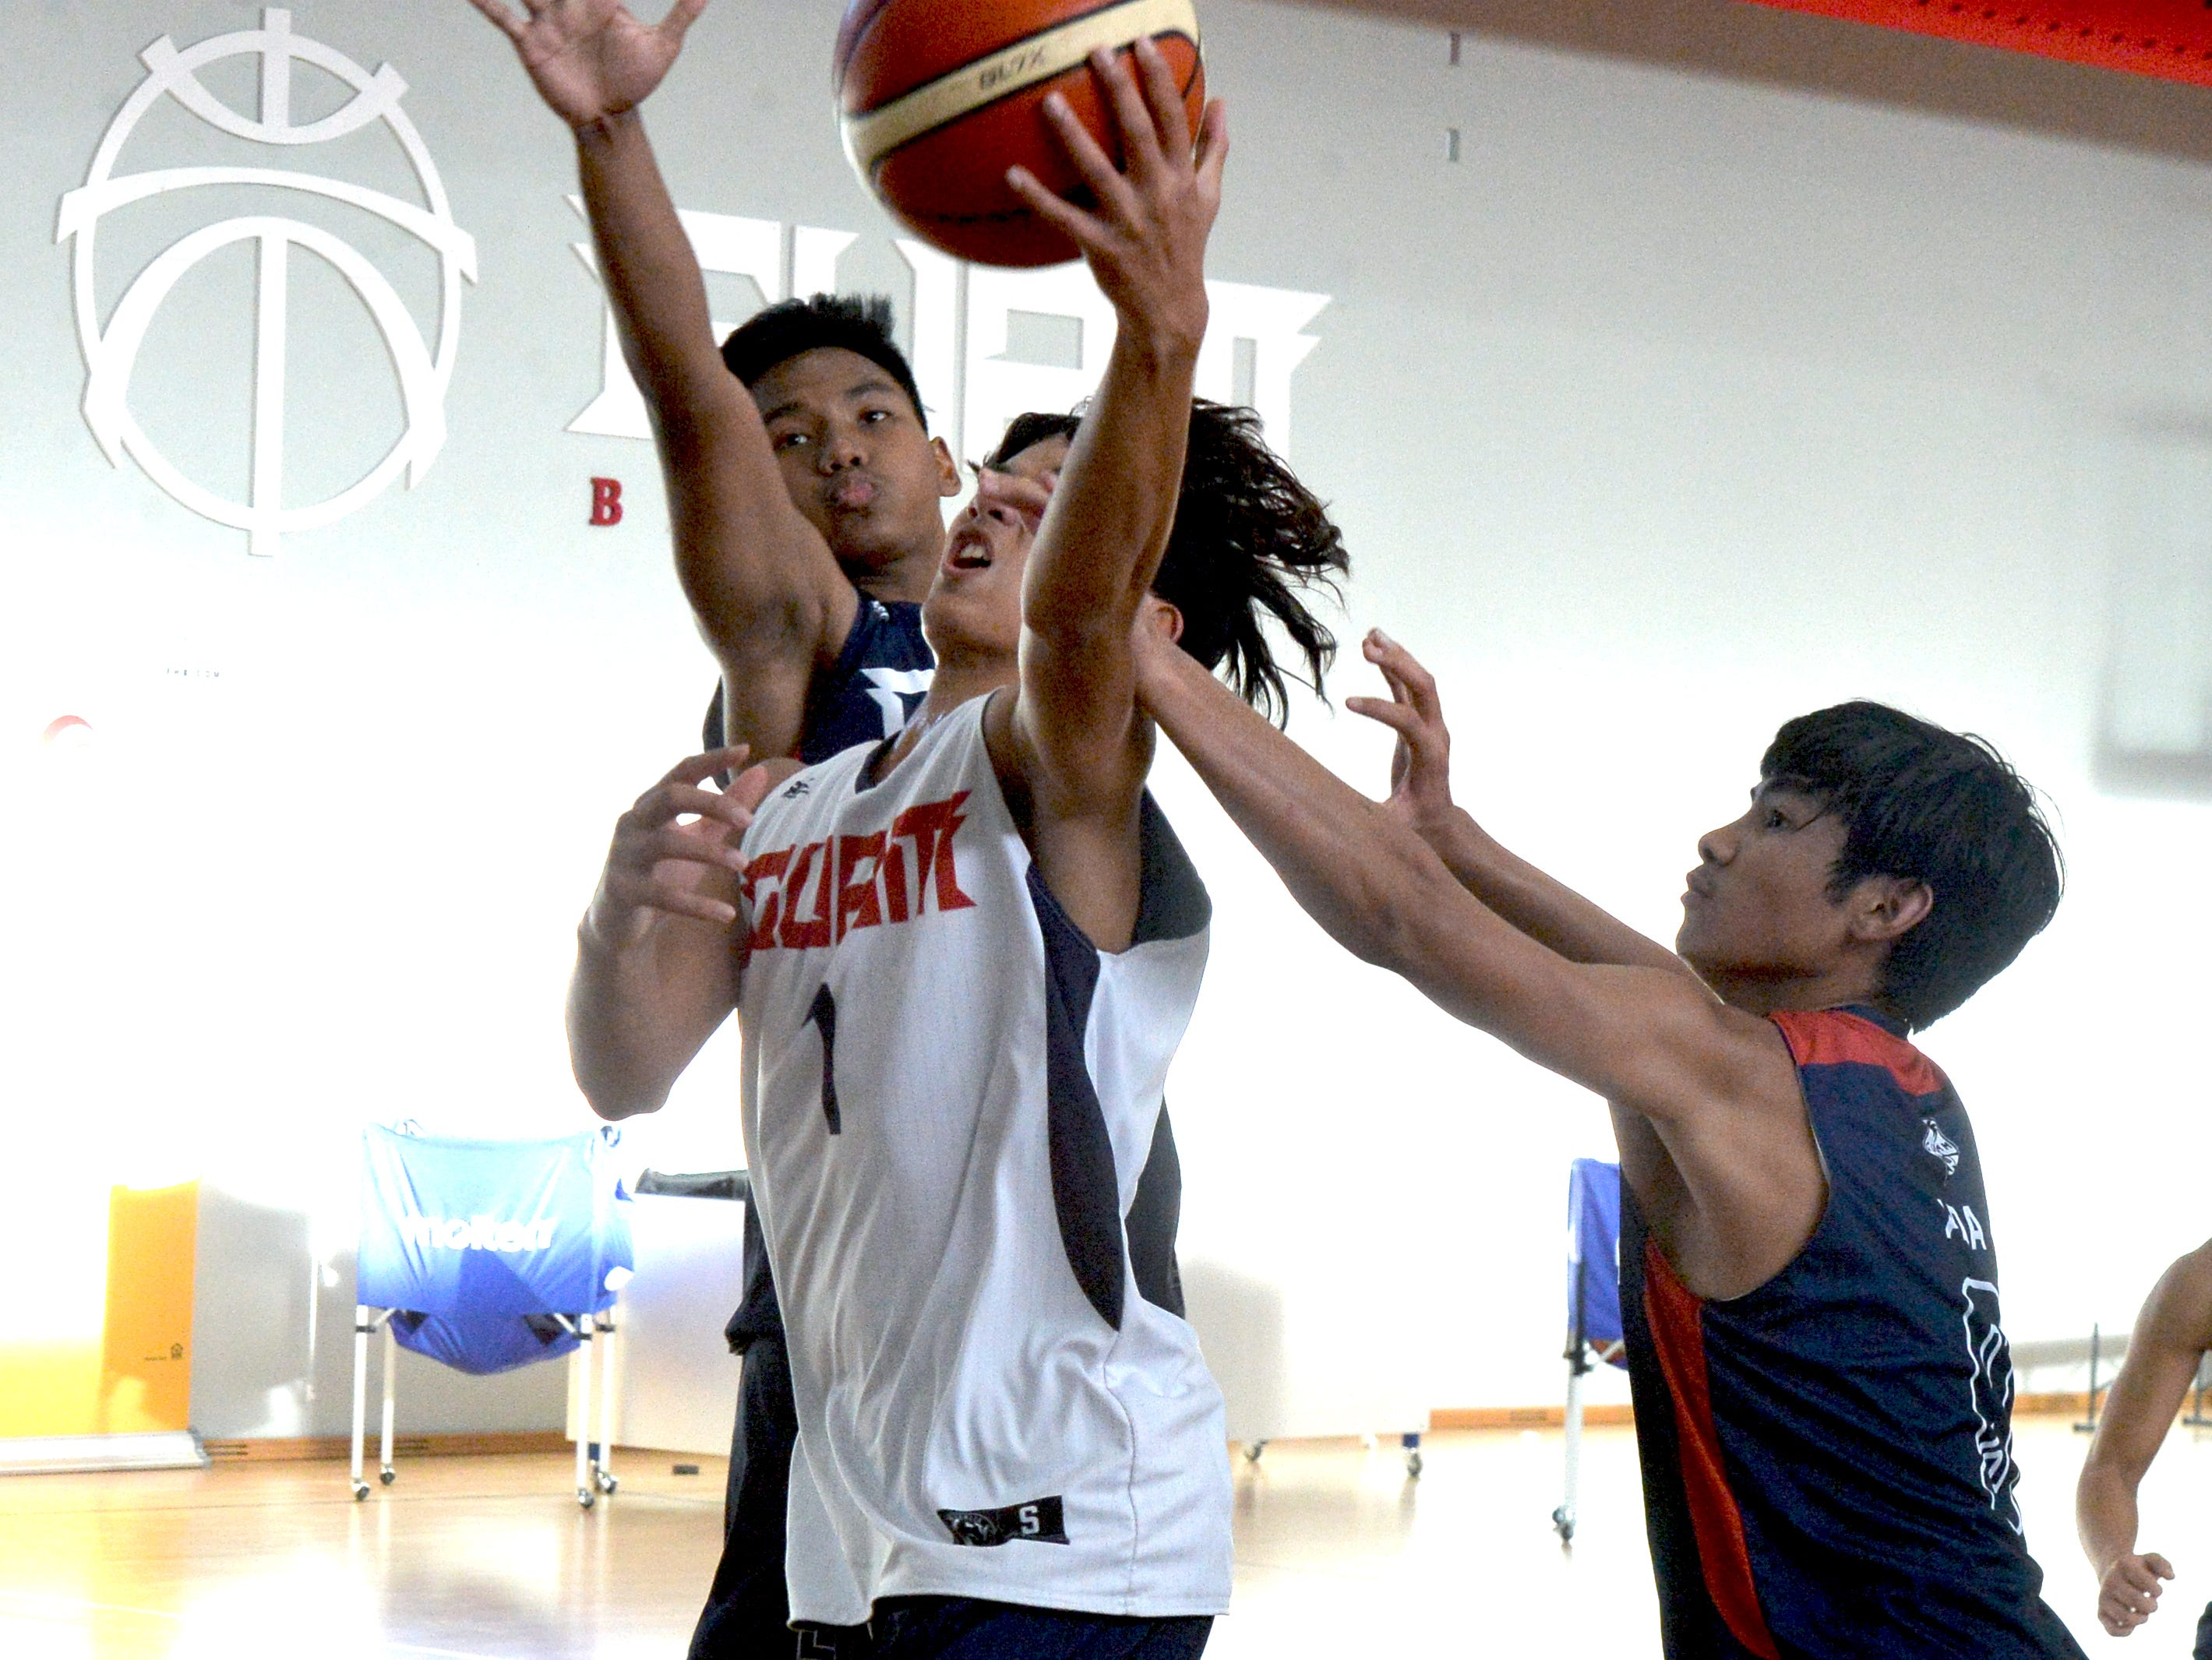 Practicing game scenarios is what keeps Guam's U15 team in game-ready mode as they head to the FIBA U15 Oceania Championships Dec. 4-6 in Papua New Guinea.